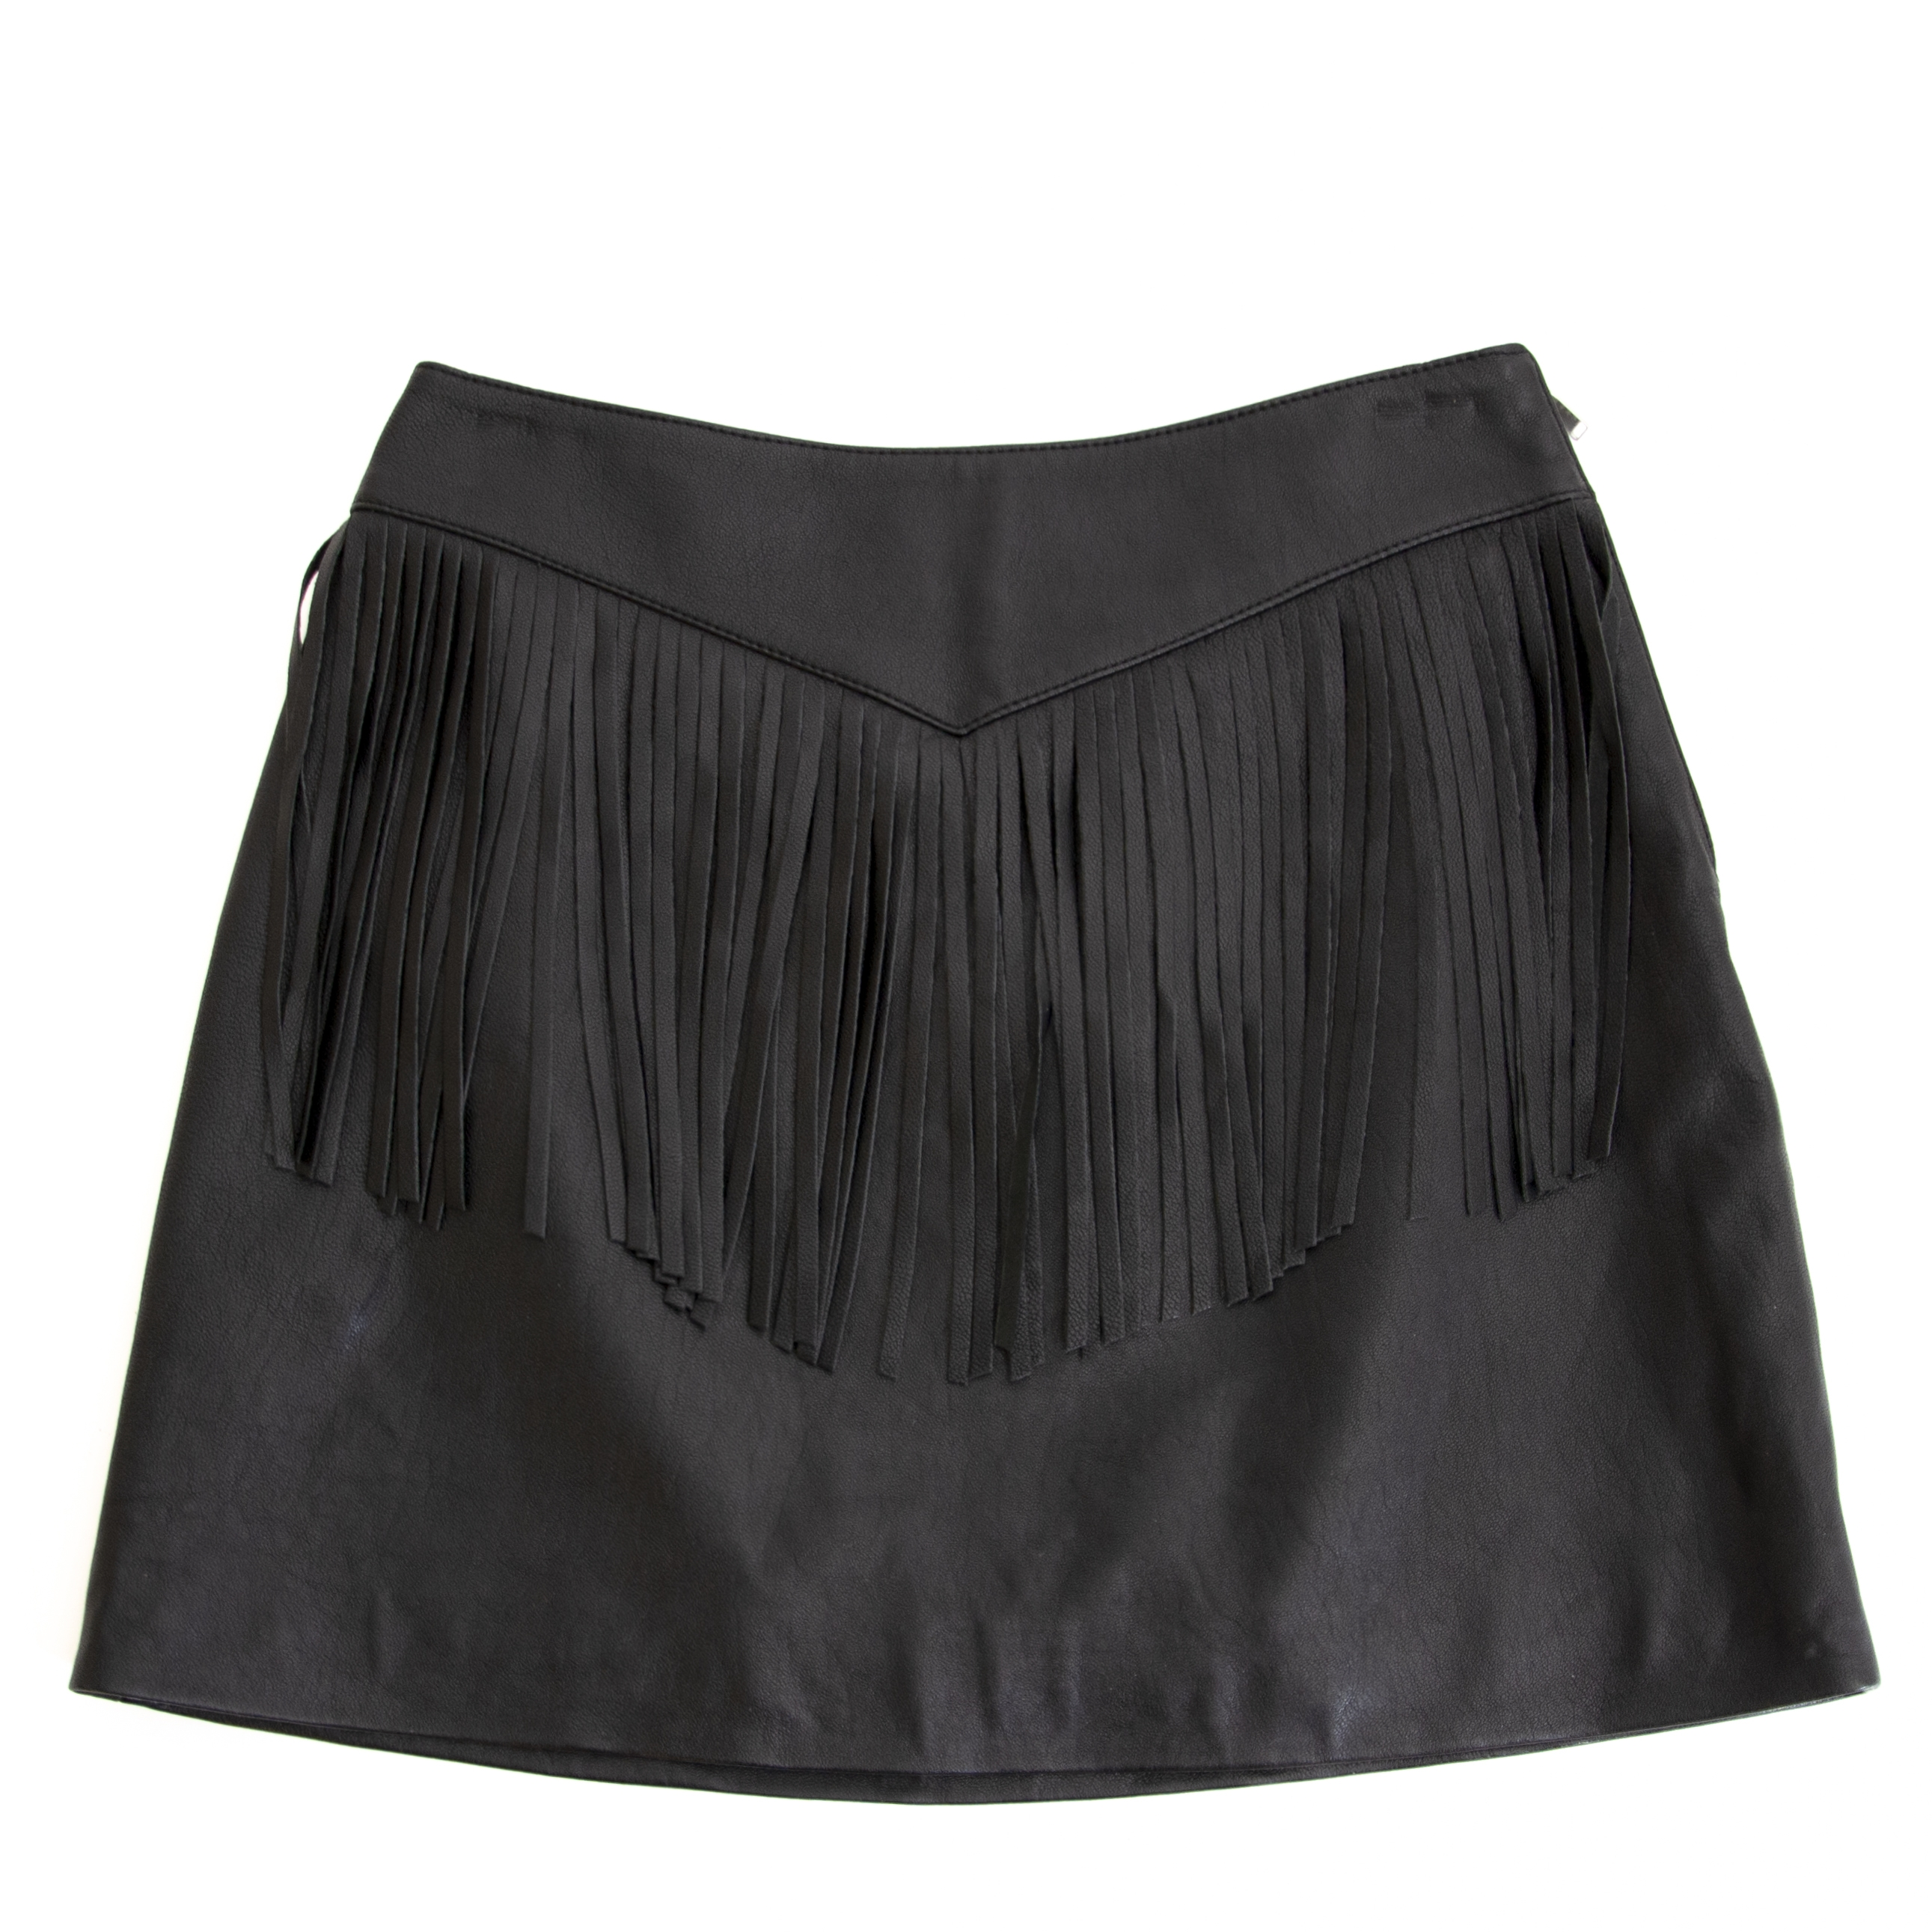 Buy authentic second hand Yves Saint Laurent Black Fringe Skirt - size 36 at online webshop LabelLOV